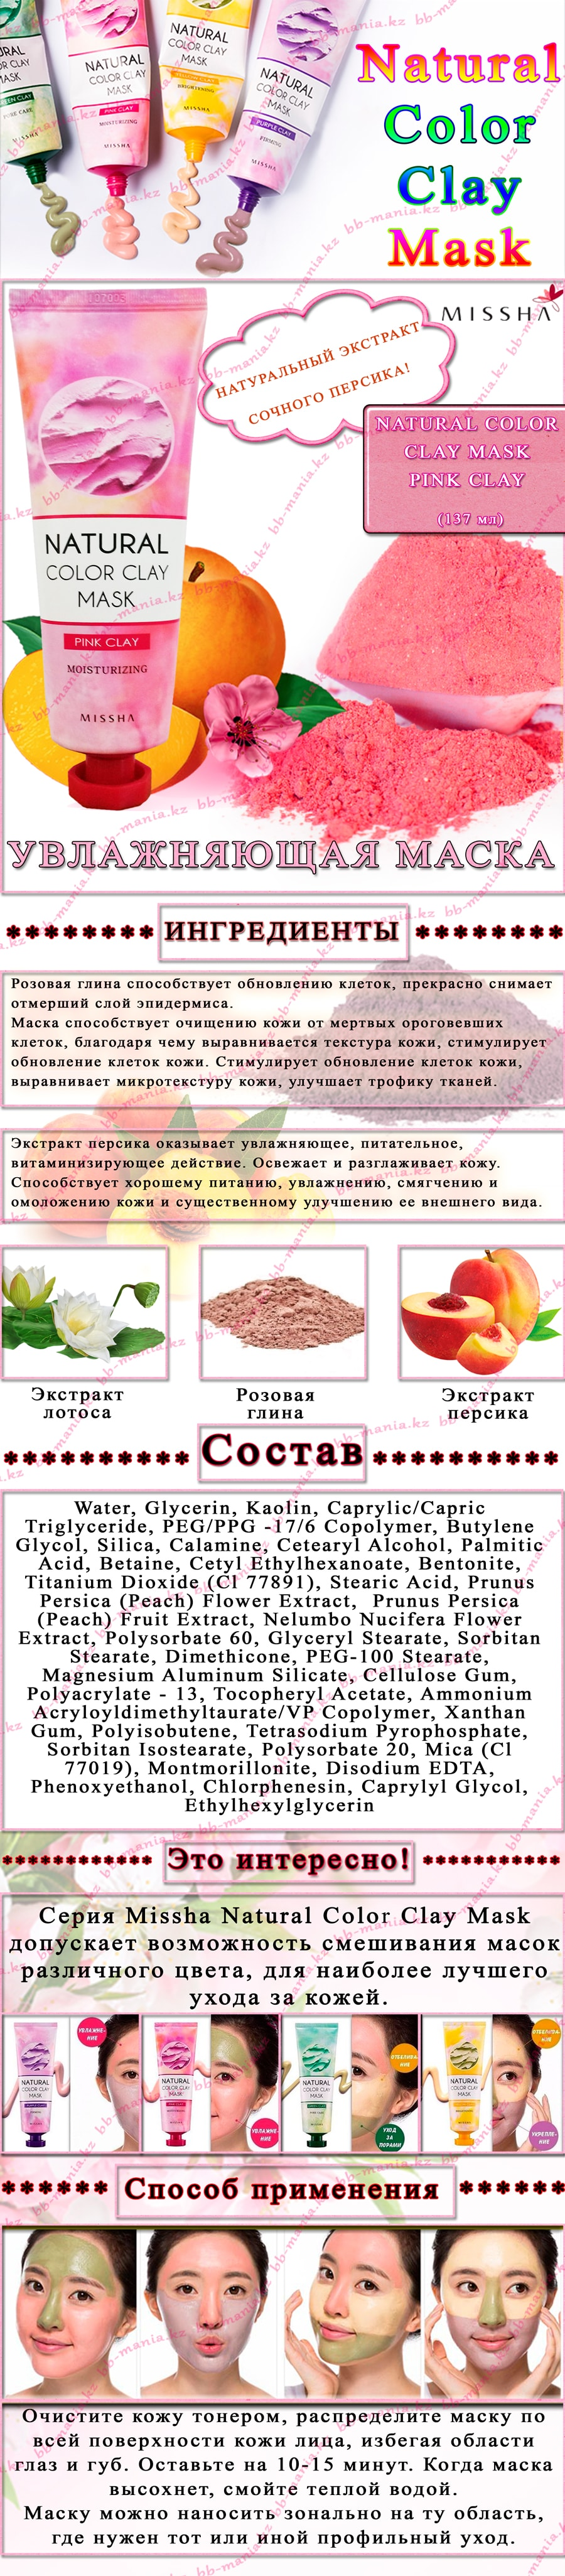 Natural-Color-Clay-Mask-Pink-Clay-Moisturizing-min